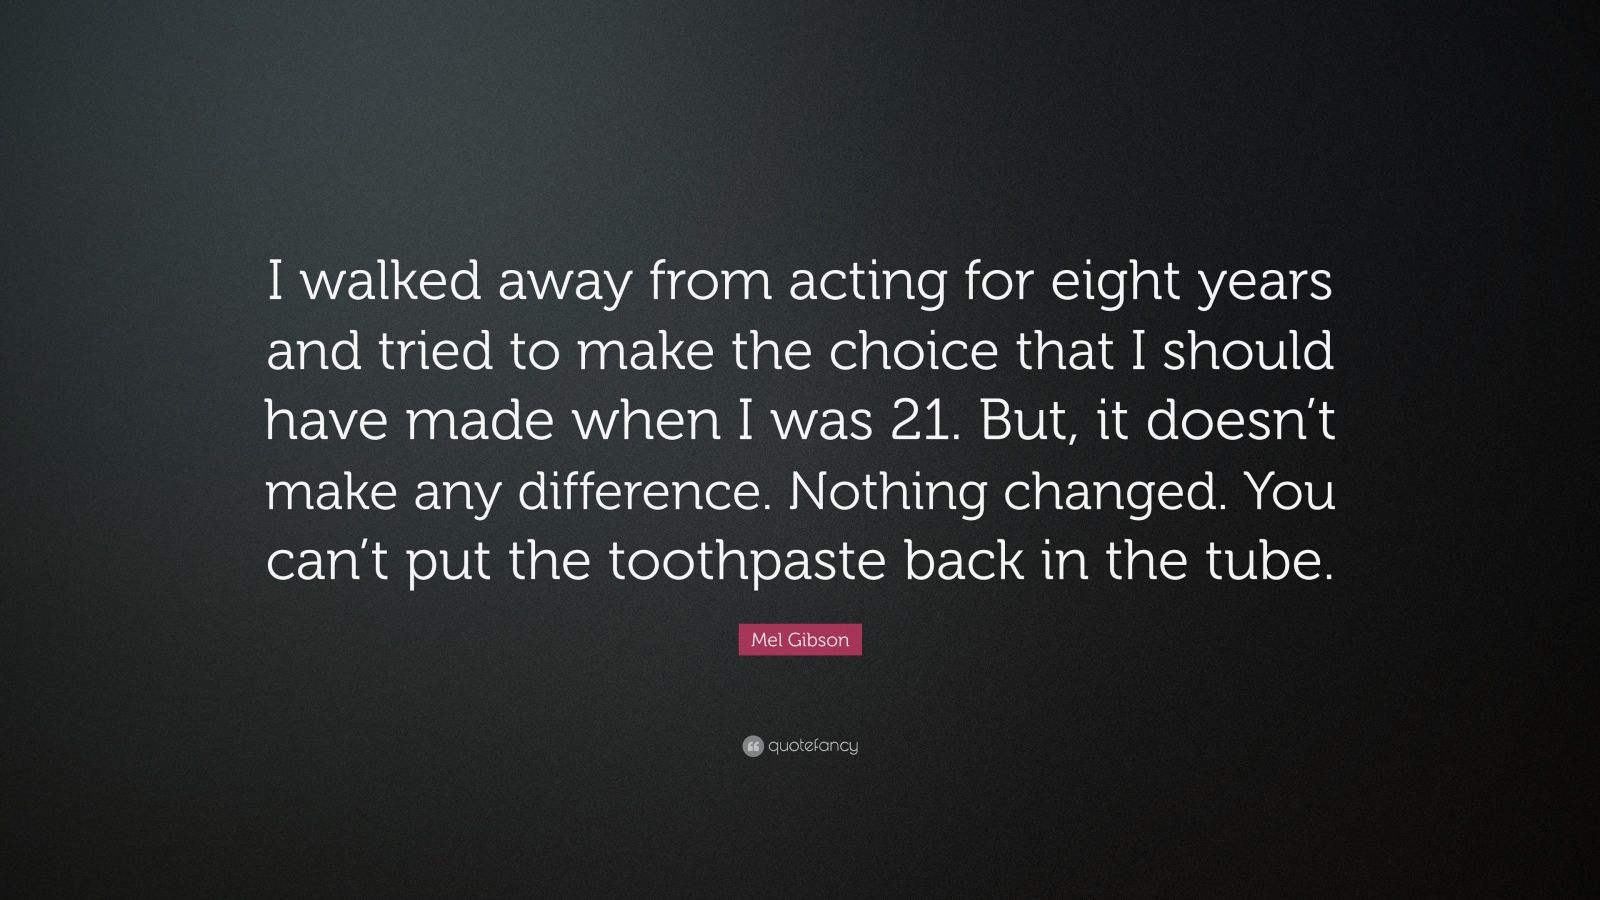 """Mel Gibson Quote: """"I walked away from acting for eight years and tried to make the choice that I should have made when I was 21. But, it doesn't make any difference. Nothing changed. You can't put the toothpaste back in the tube."""""""